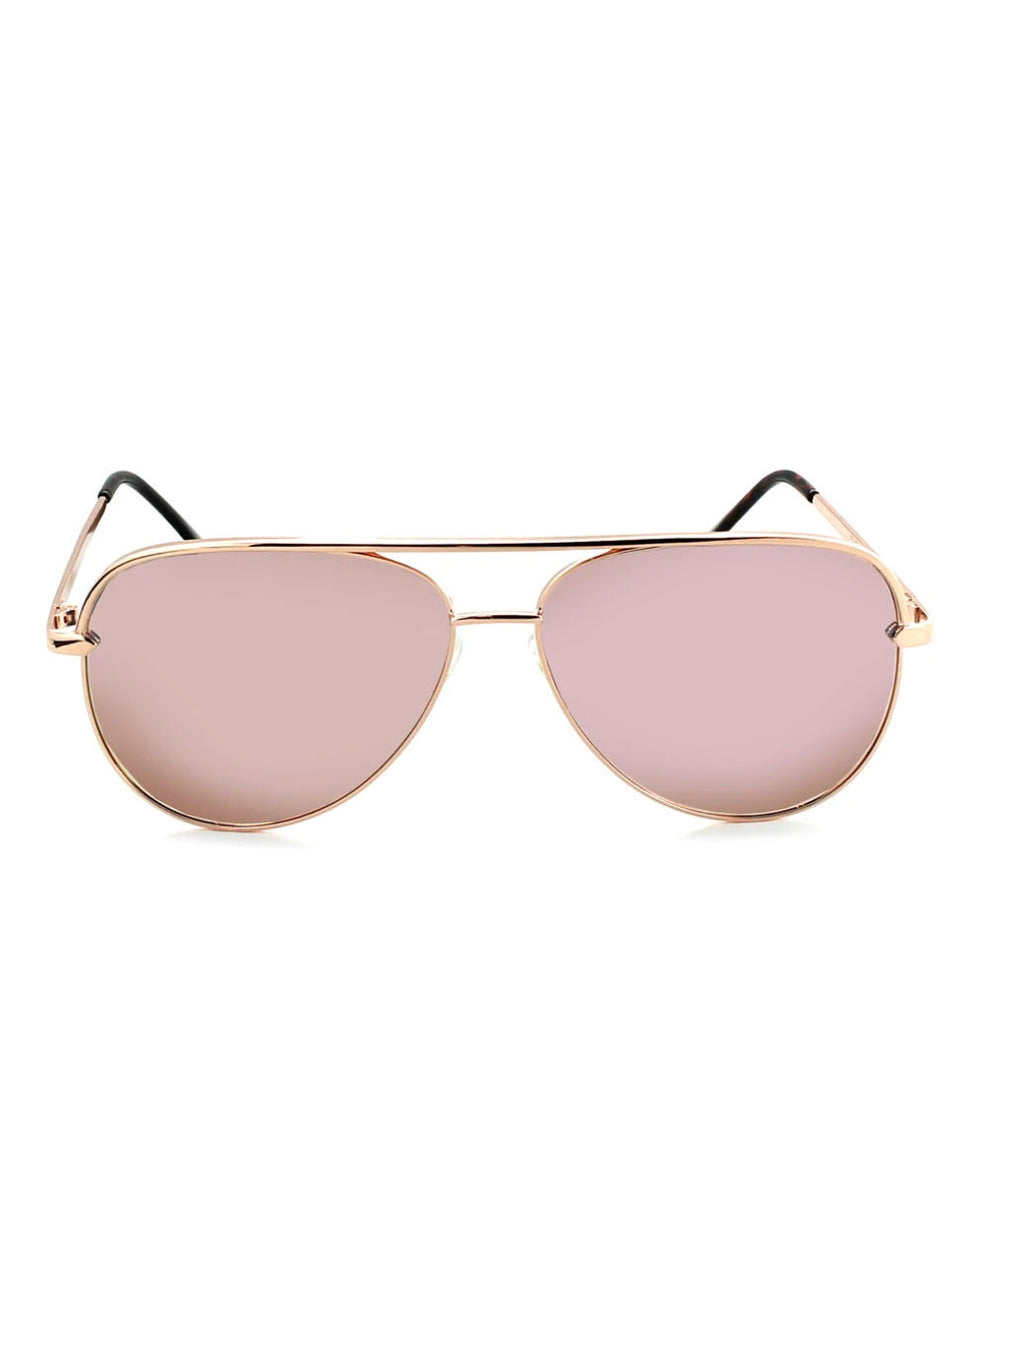 ONE Flatscreen Sunglasses in Shiny Rose Gold